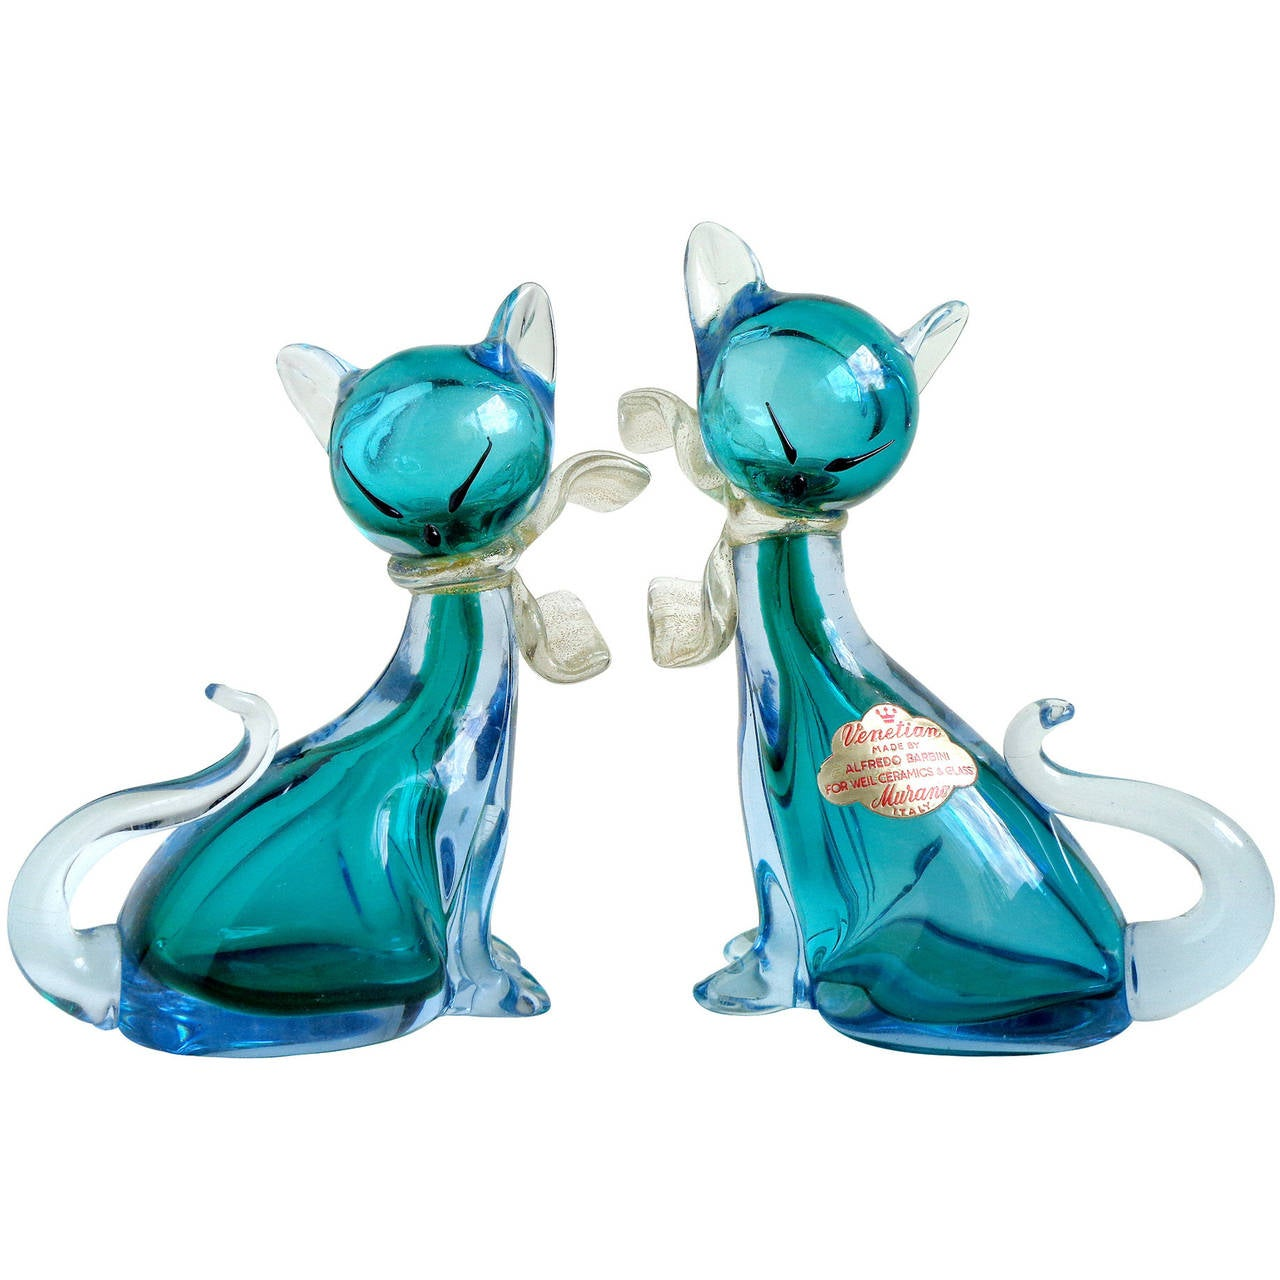 Alfredo Barbini Murano Sommerso Aqua Blue Italian Art Glass Kitty Cat Figurines 1